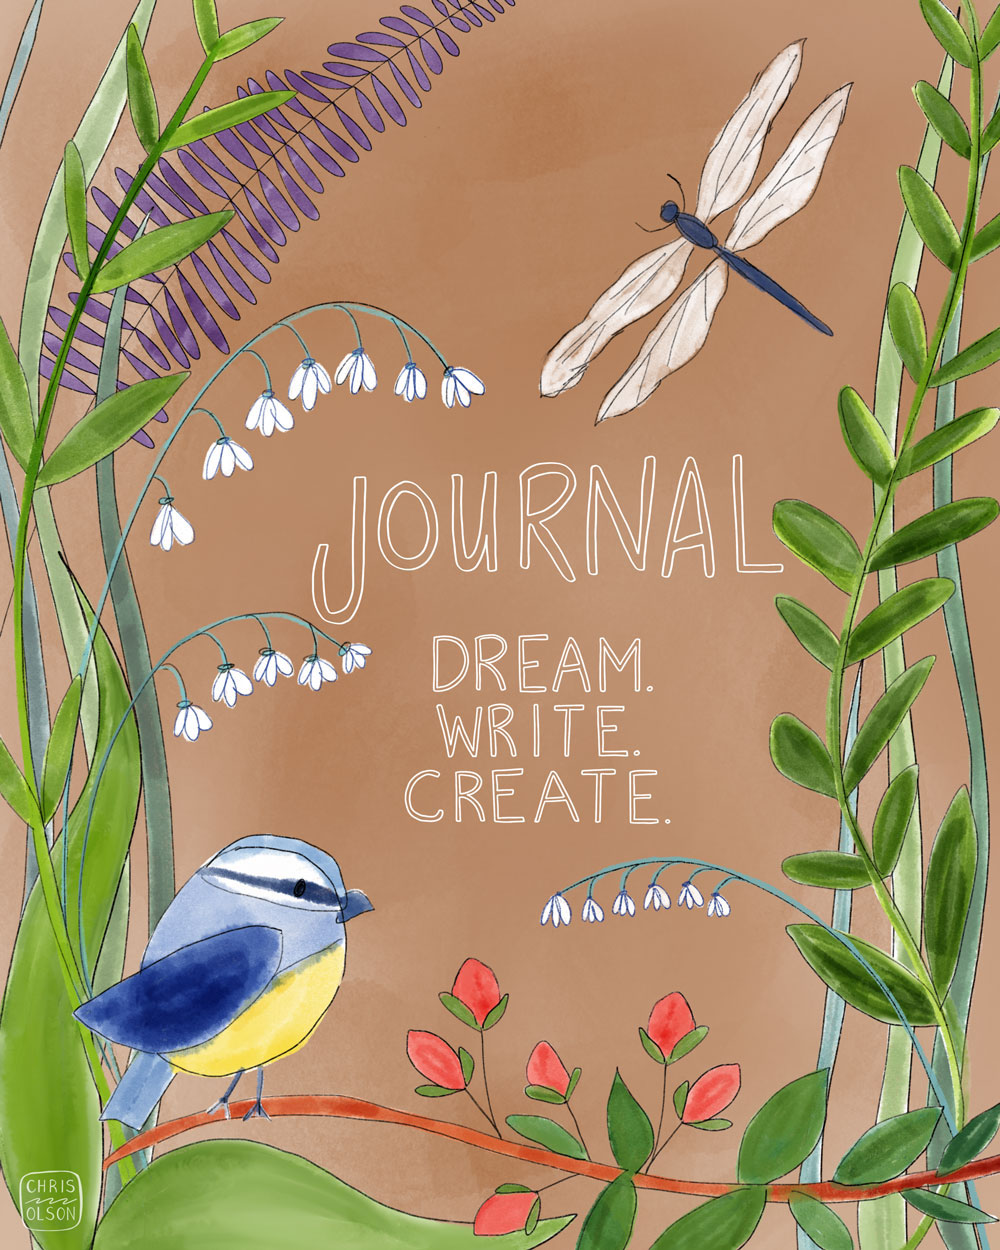 Journal by Chris Olson